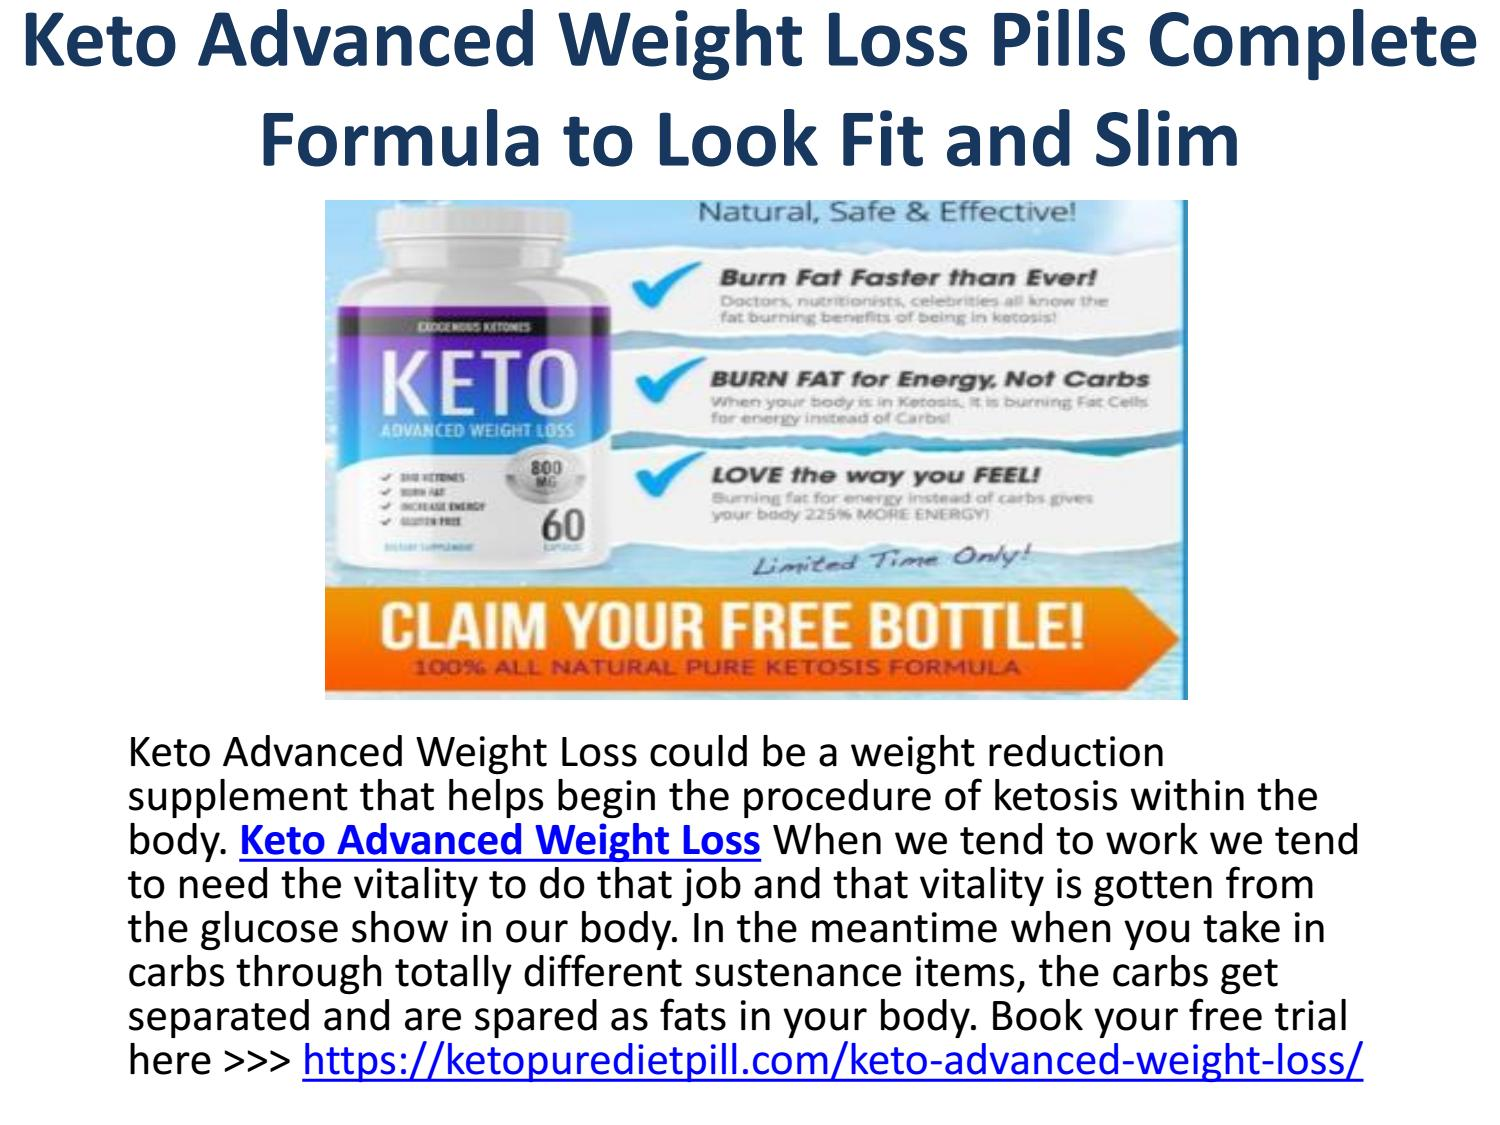 Keto Advanced Weight Loss Pills Complete Formula To Look Fit And